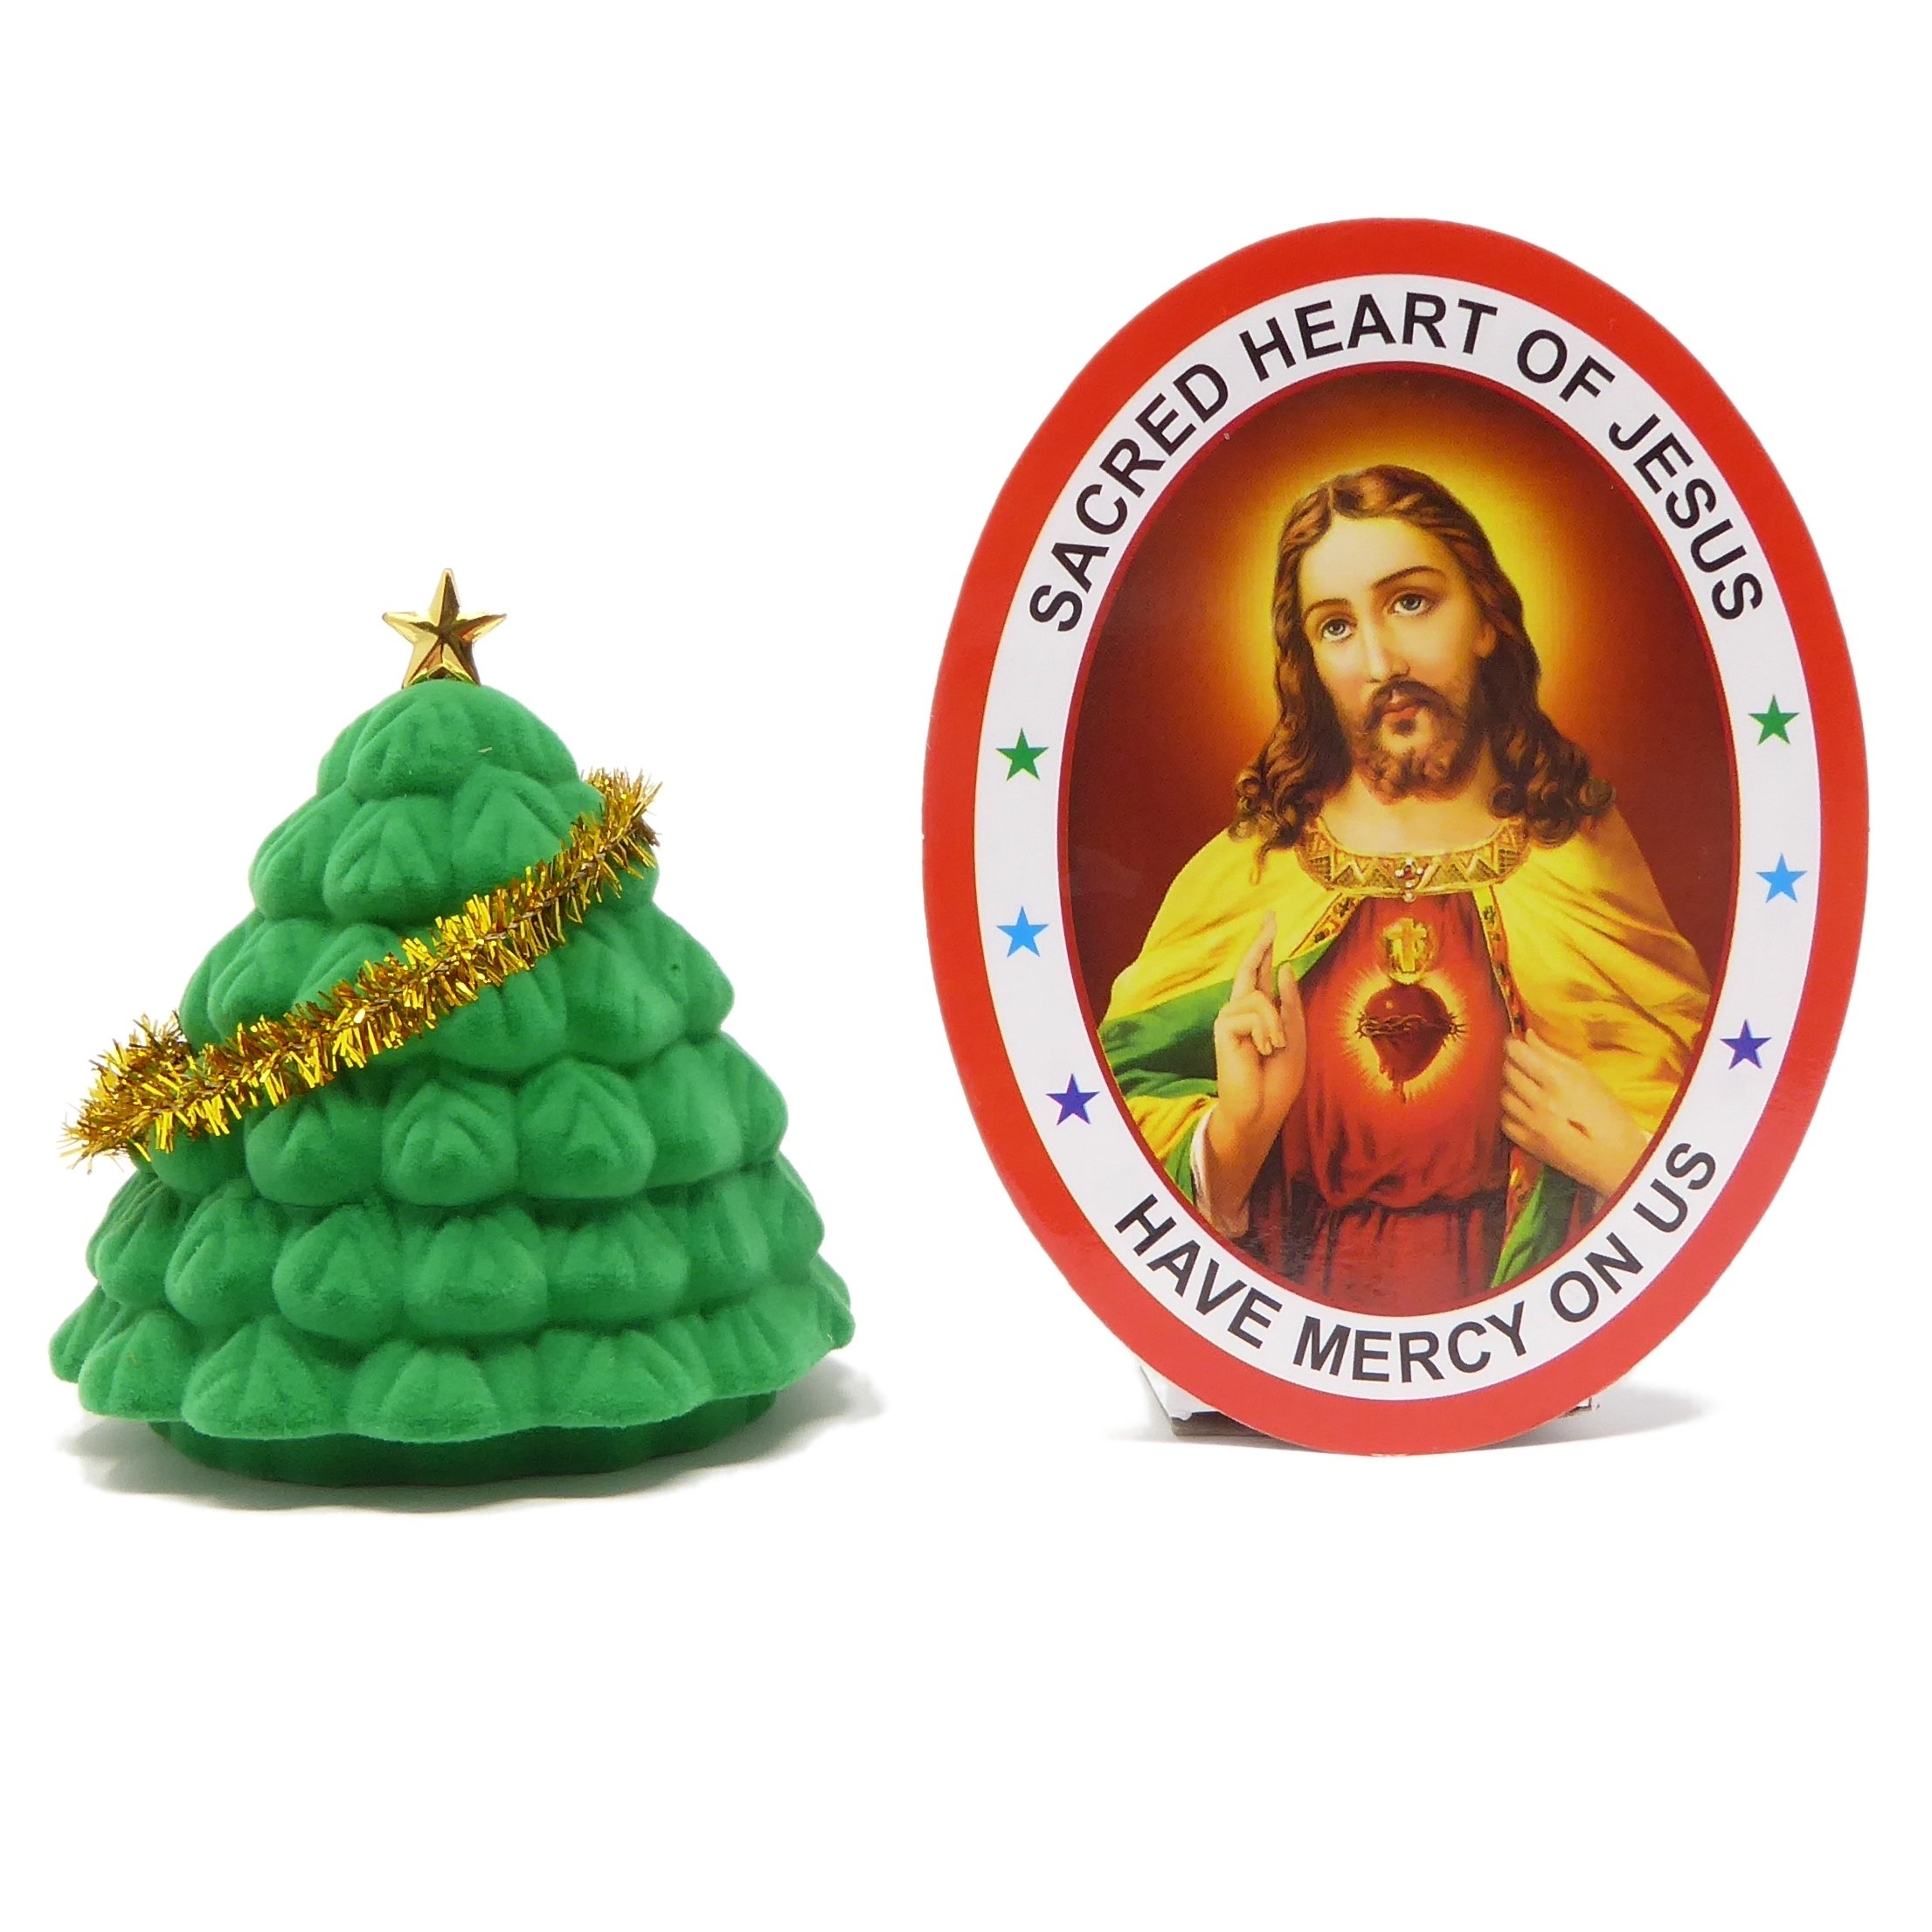 Rosary Heaven Pocket crib nativity scene in a Christmas tree gift box small 6cm Christian with window sticker by Rosary Heaven (Image #1)